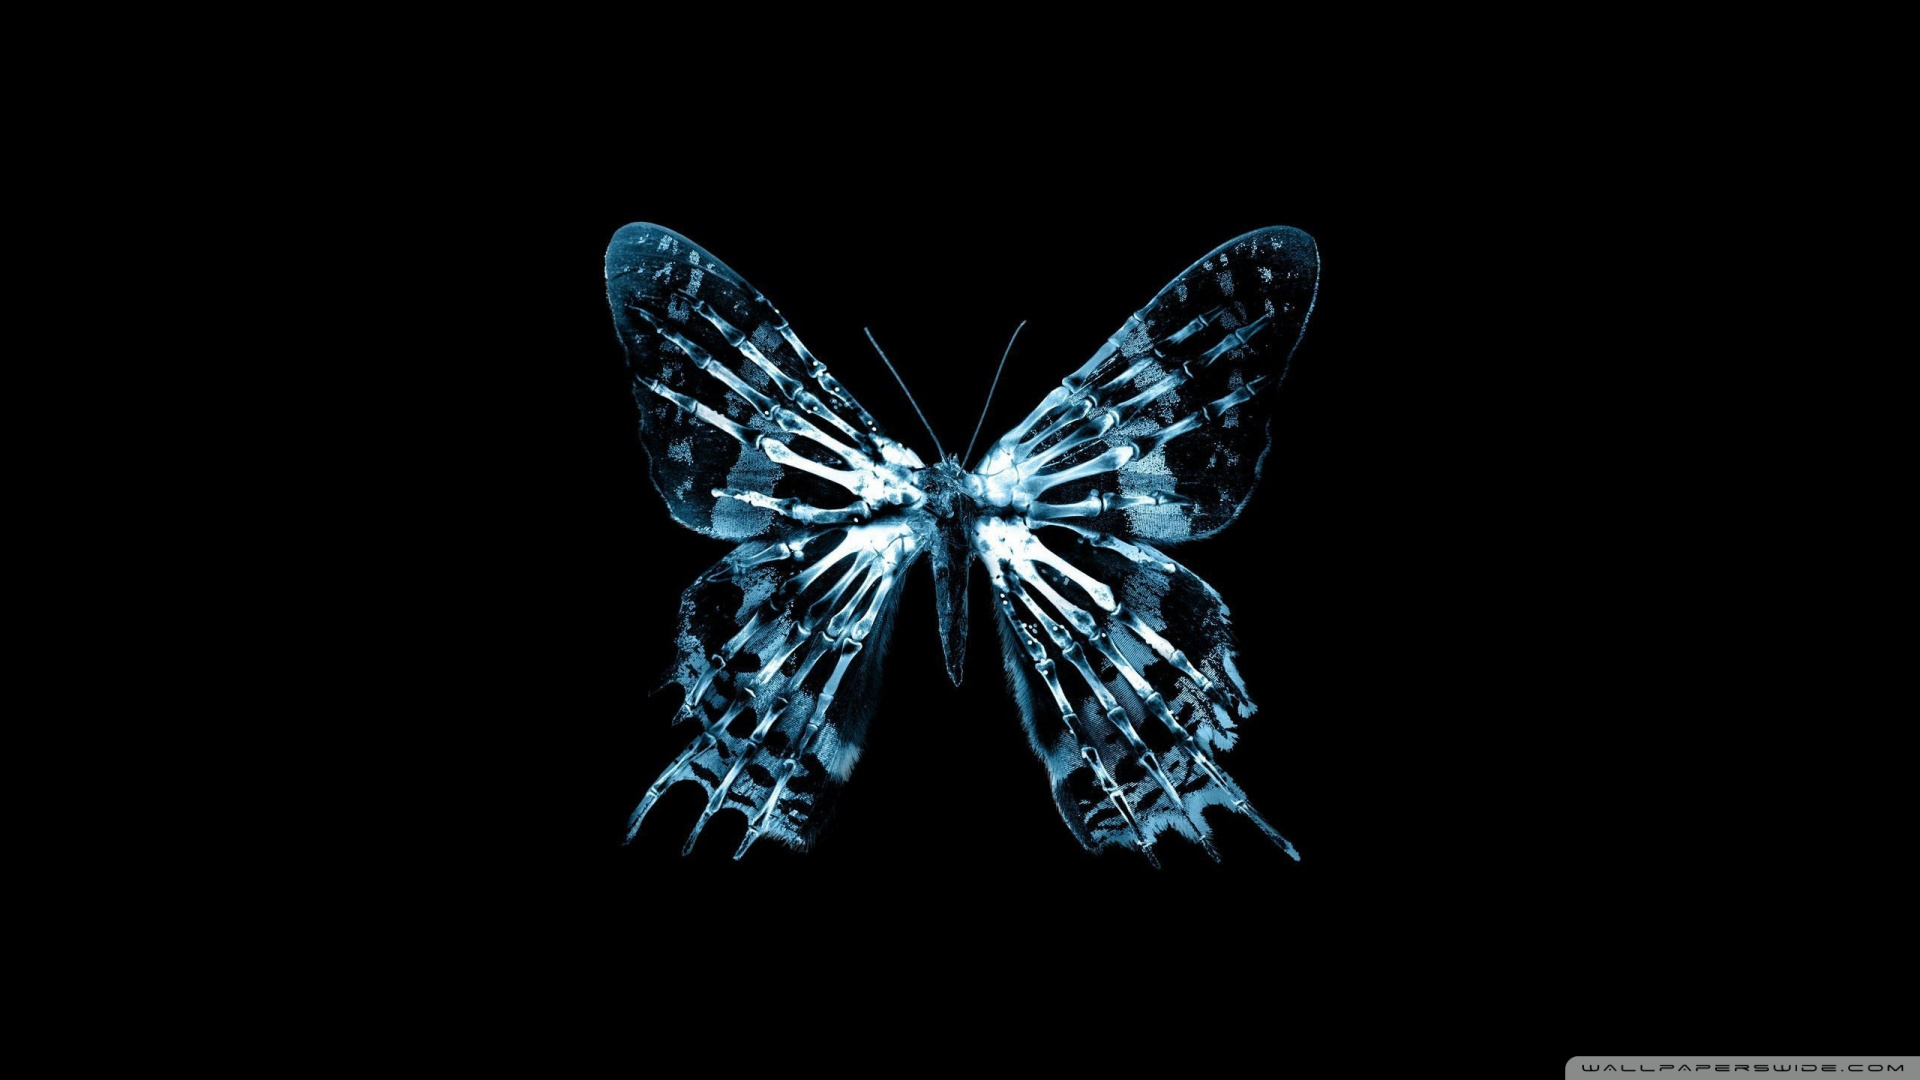 Butterfly X Ray Wallpaper 1920x1080 Butterfly X Ray 1920x1080